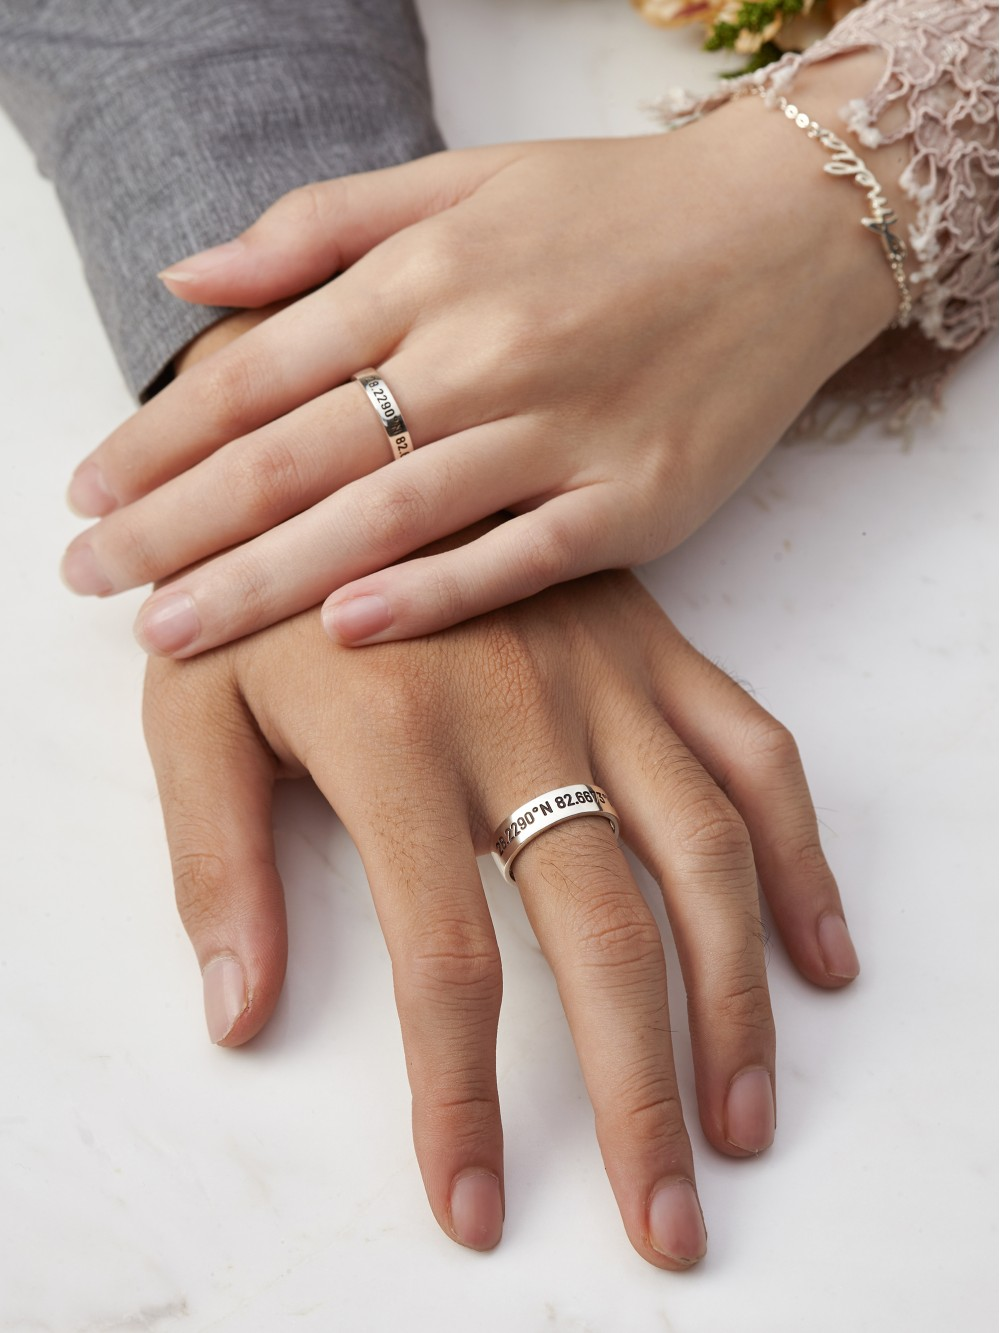 Couple Coordinates Rings in 2020 Ring for boyfriend